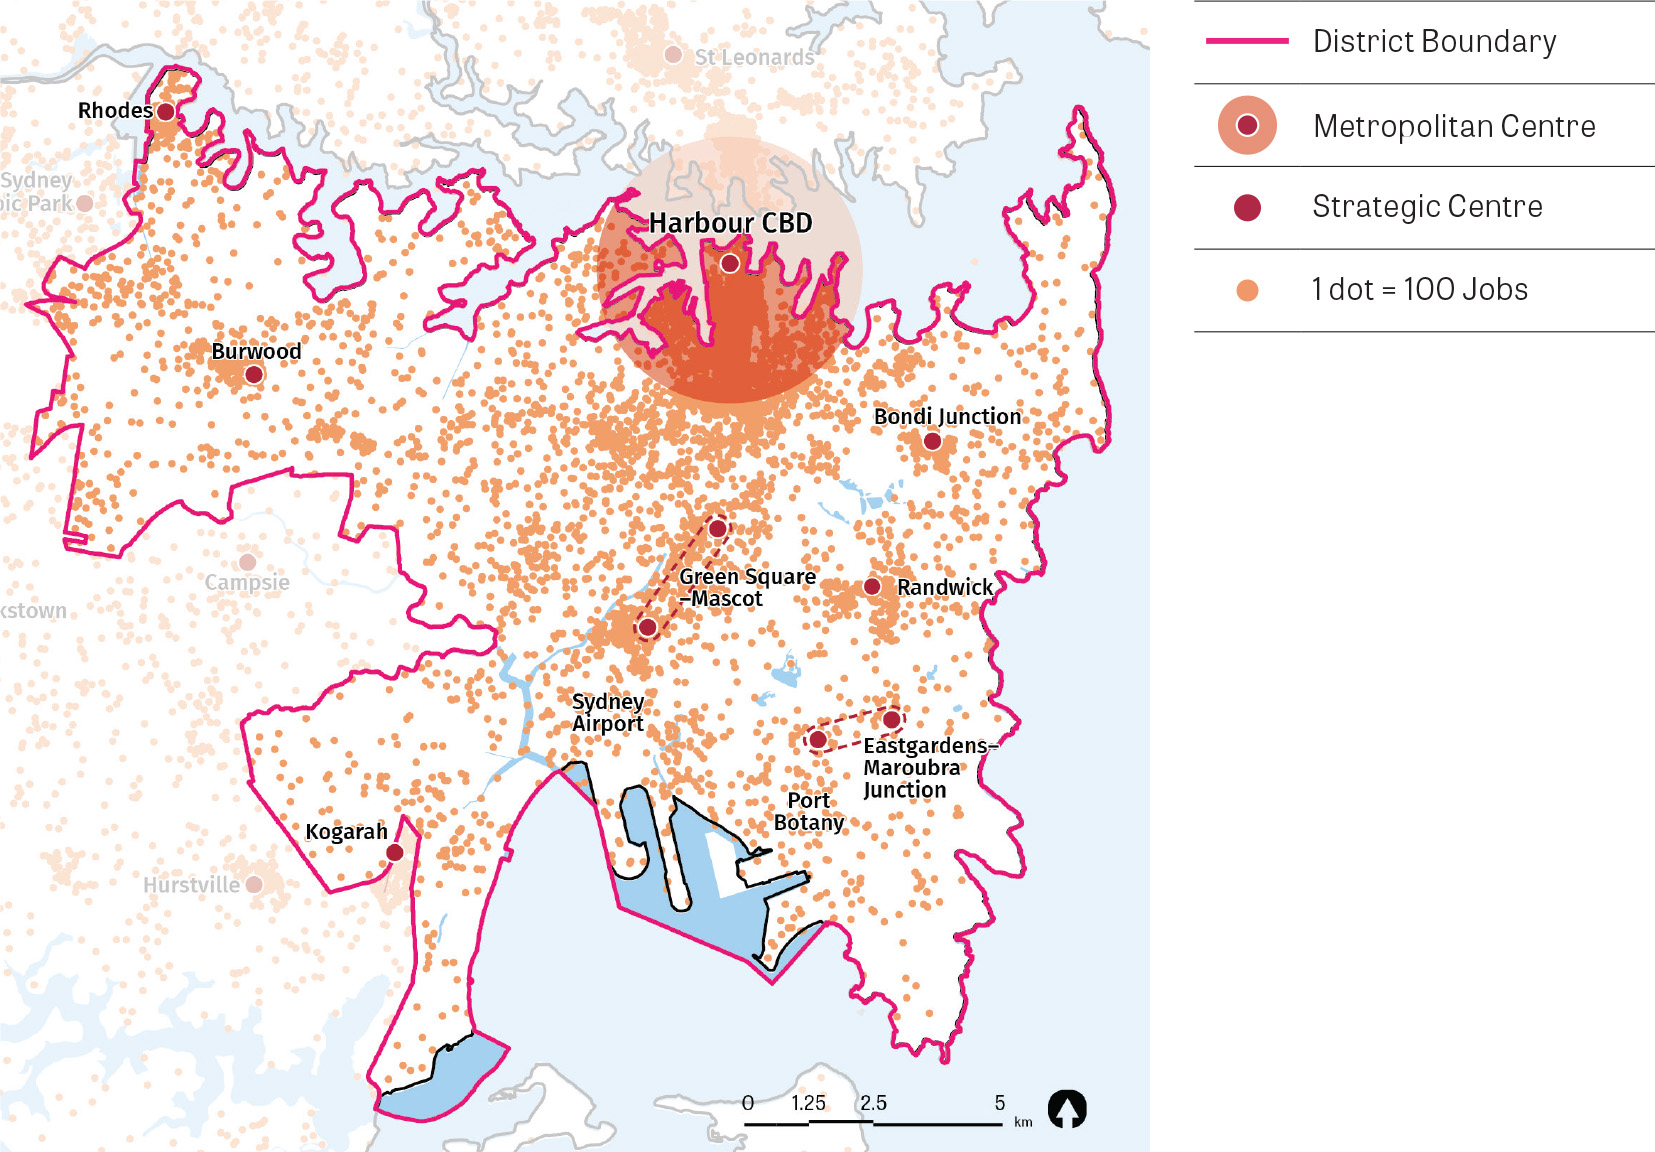 A map of the Eastern City District overlayed with Metropolitan Centres, Strategic Centres and concentration of jobs.